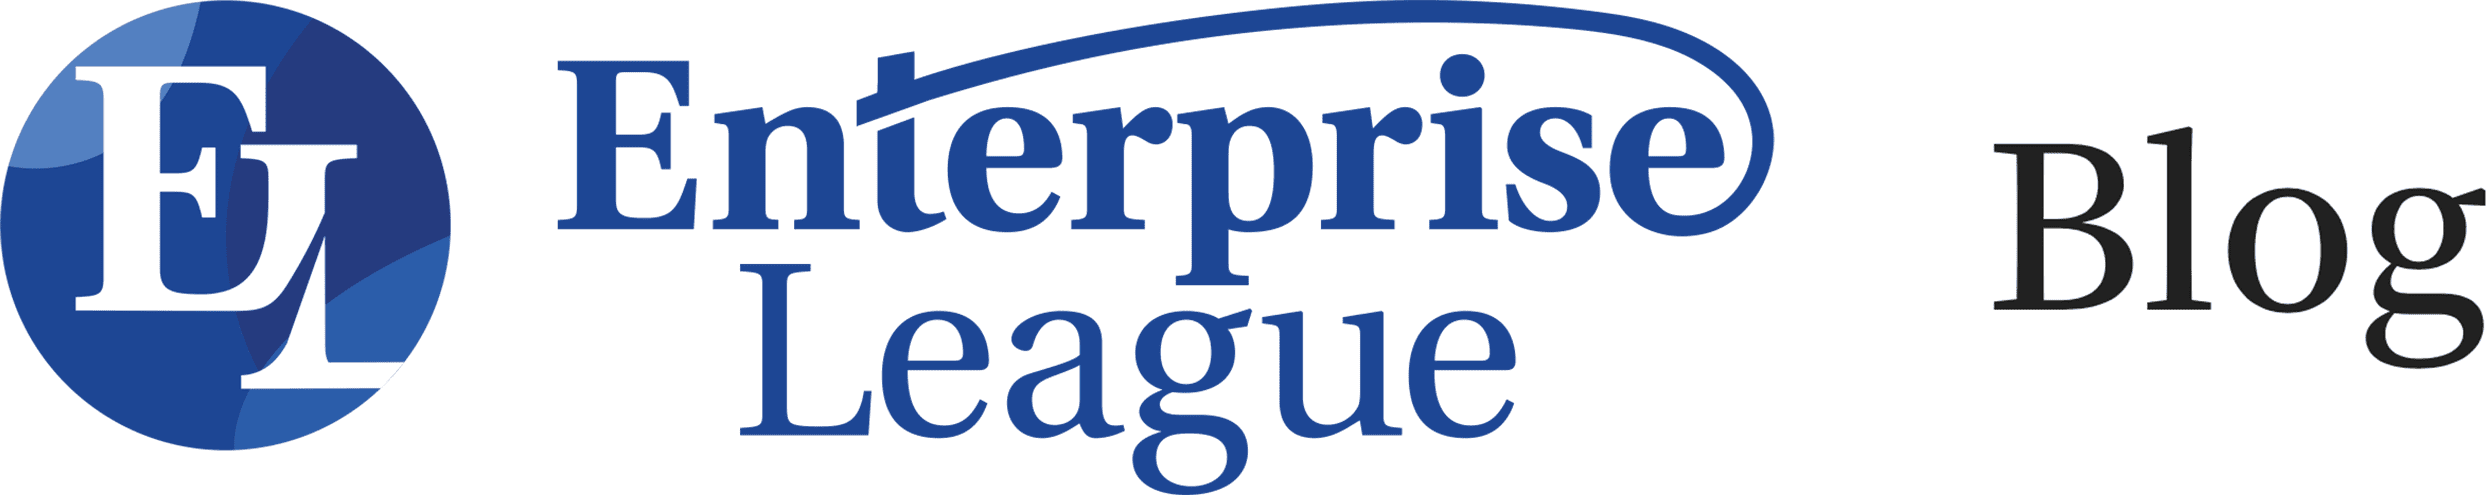 Enterprise League